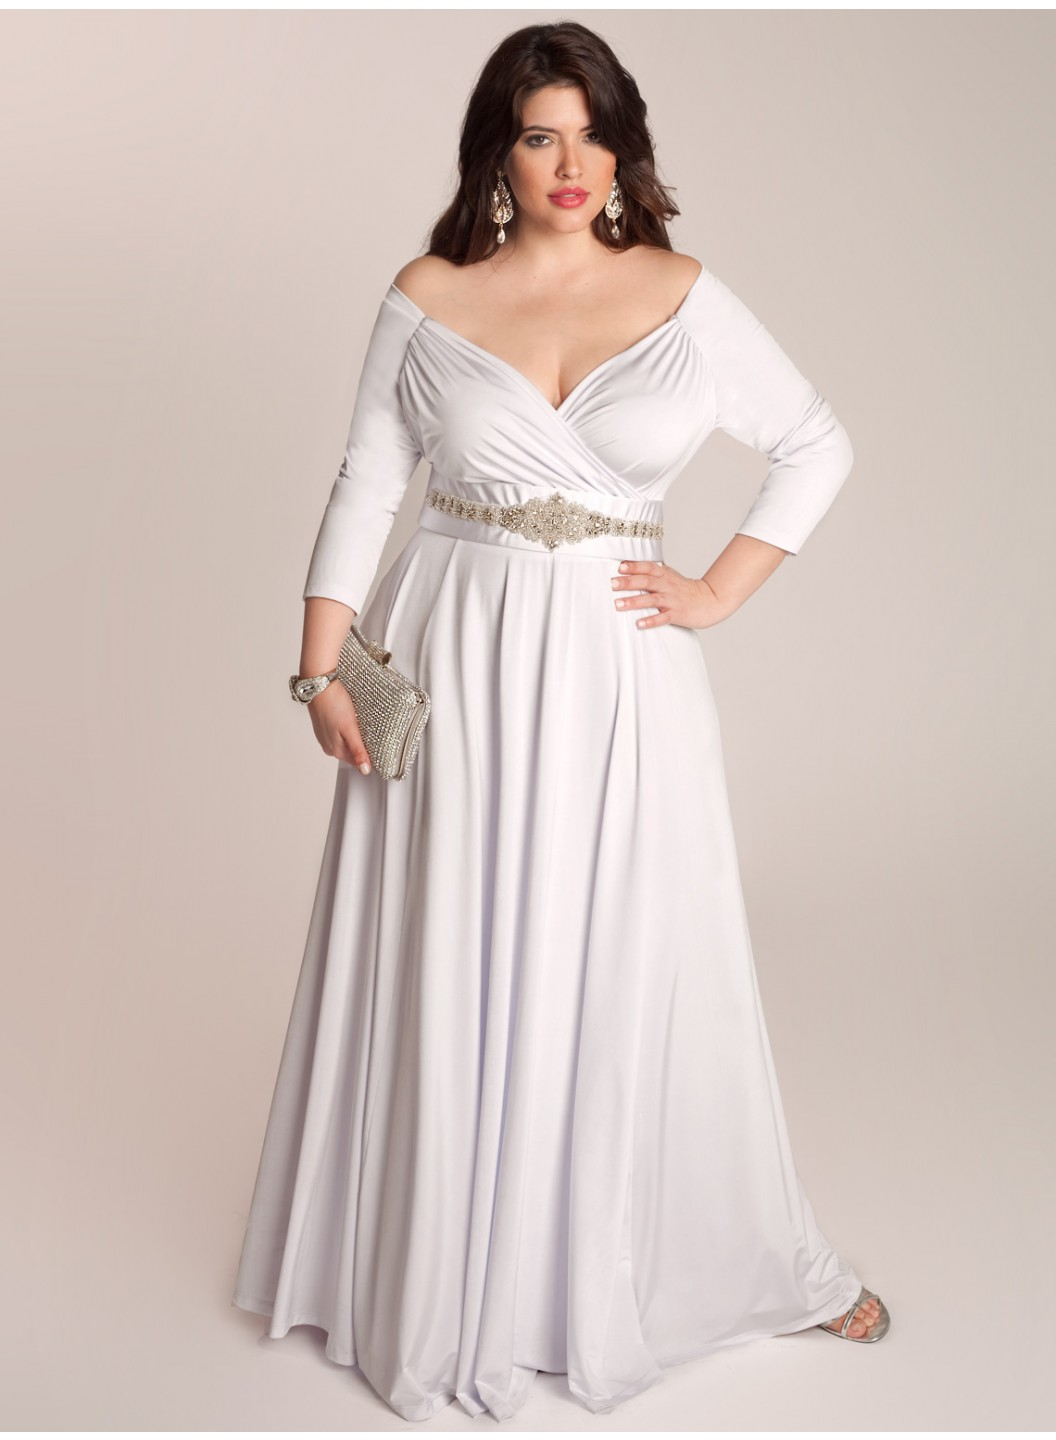 bellerose-plus-size-wedding-gown1 21 Gorgeous Plus Size Wedding Outfits for Guests 2015/16 21 Gorgeous Plus Size Wedding Outfits for Guests 2015/16 bellerose plus size wedding gown1